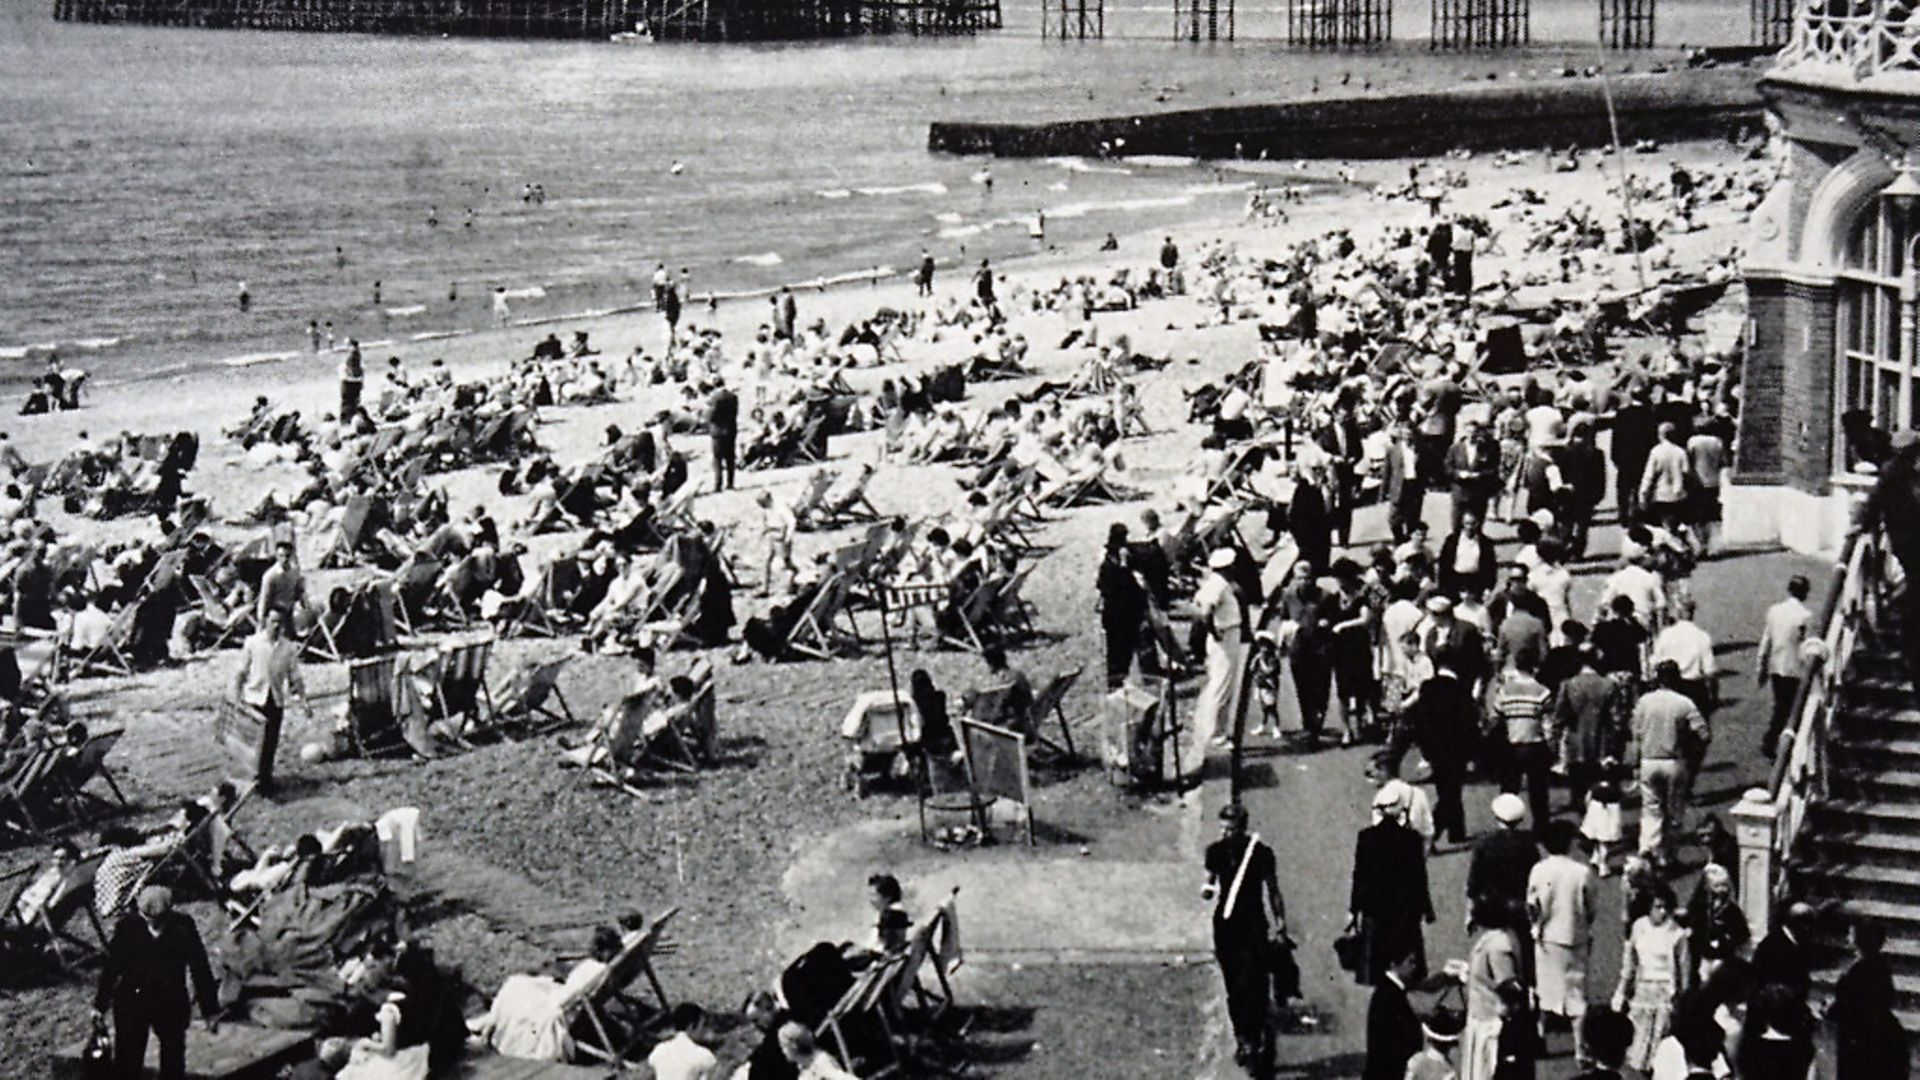 Photograph of tourists at the West Pier at Brighton on the eve of the August Bank Holiday. Dated 20th Century. (Photo by: Universal History Archive/Universal Images Group via Getty Images) - Credit: Universal Images Group via Getty